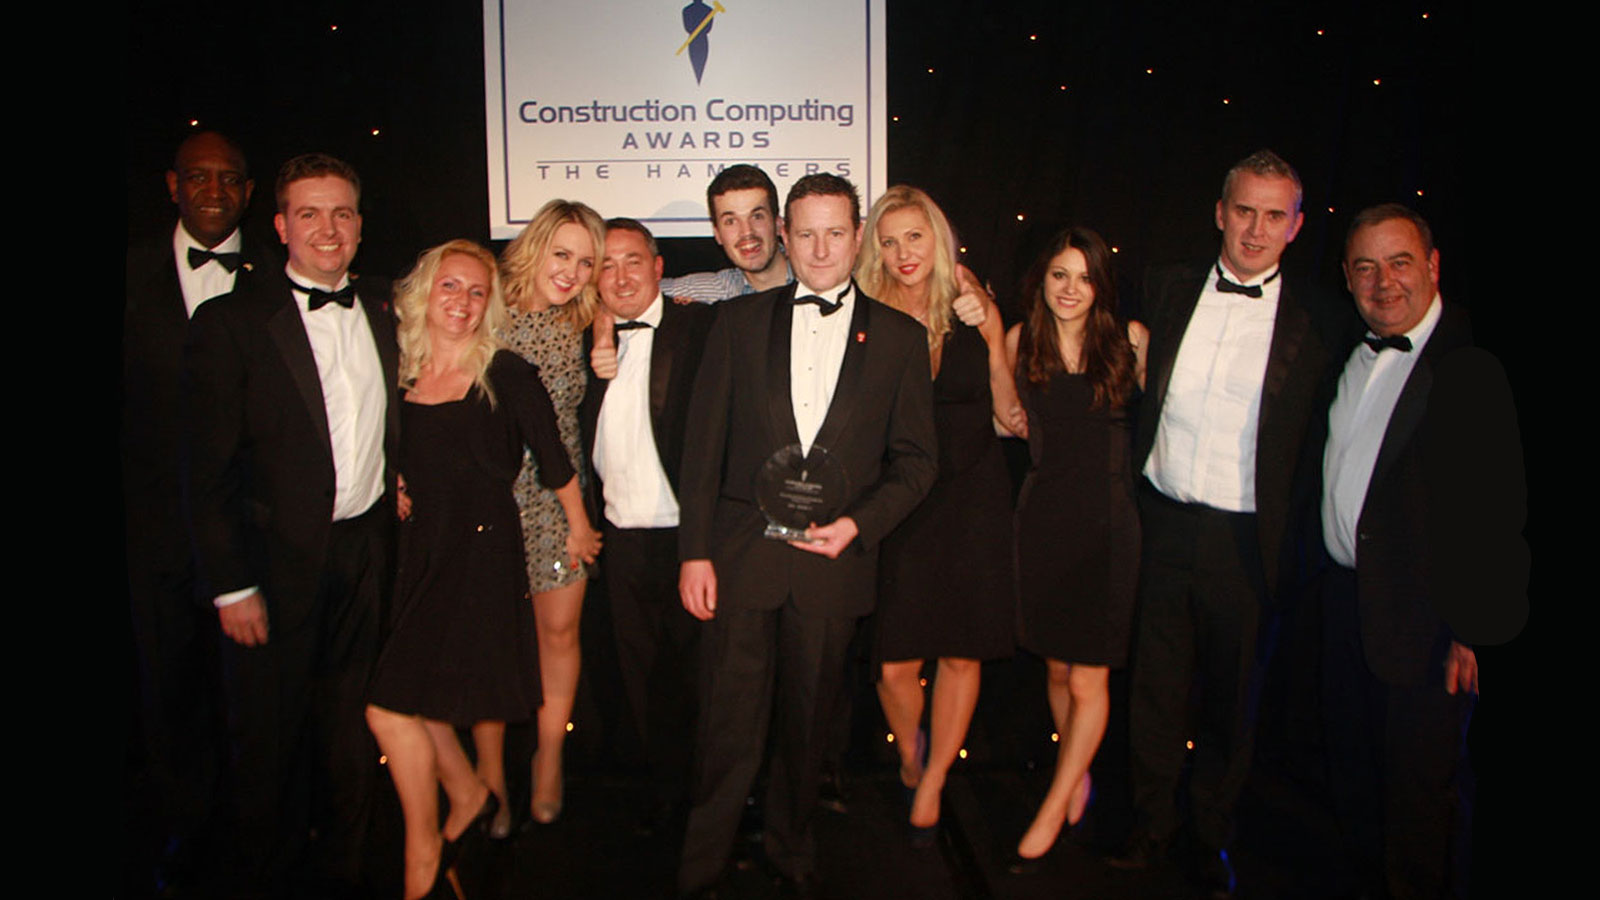 Relive Asite's Computing Construction award success!